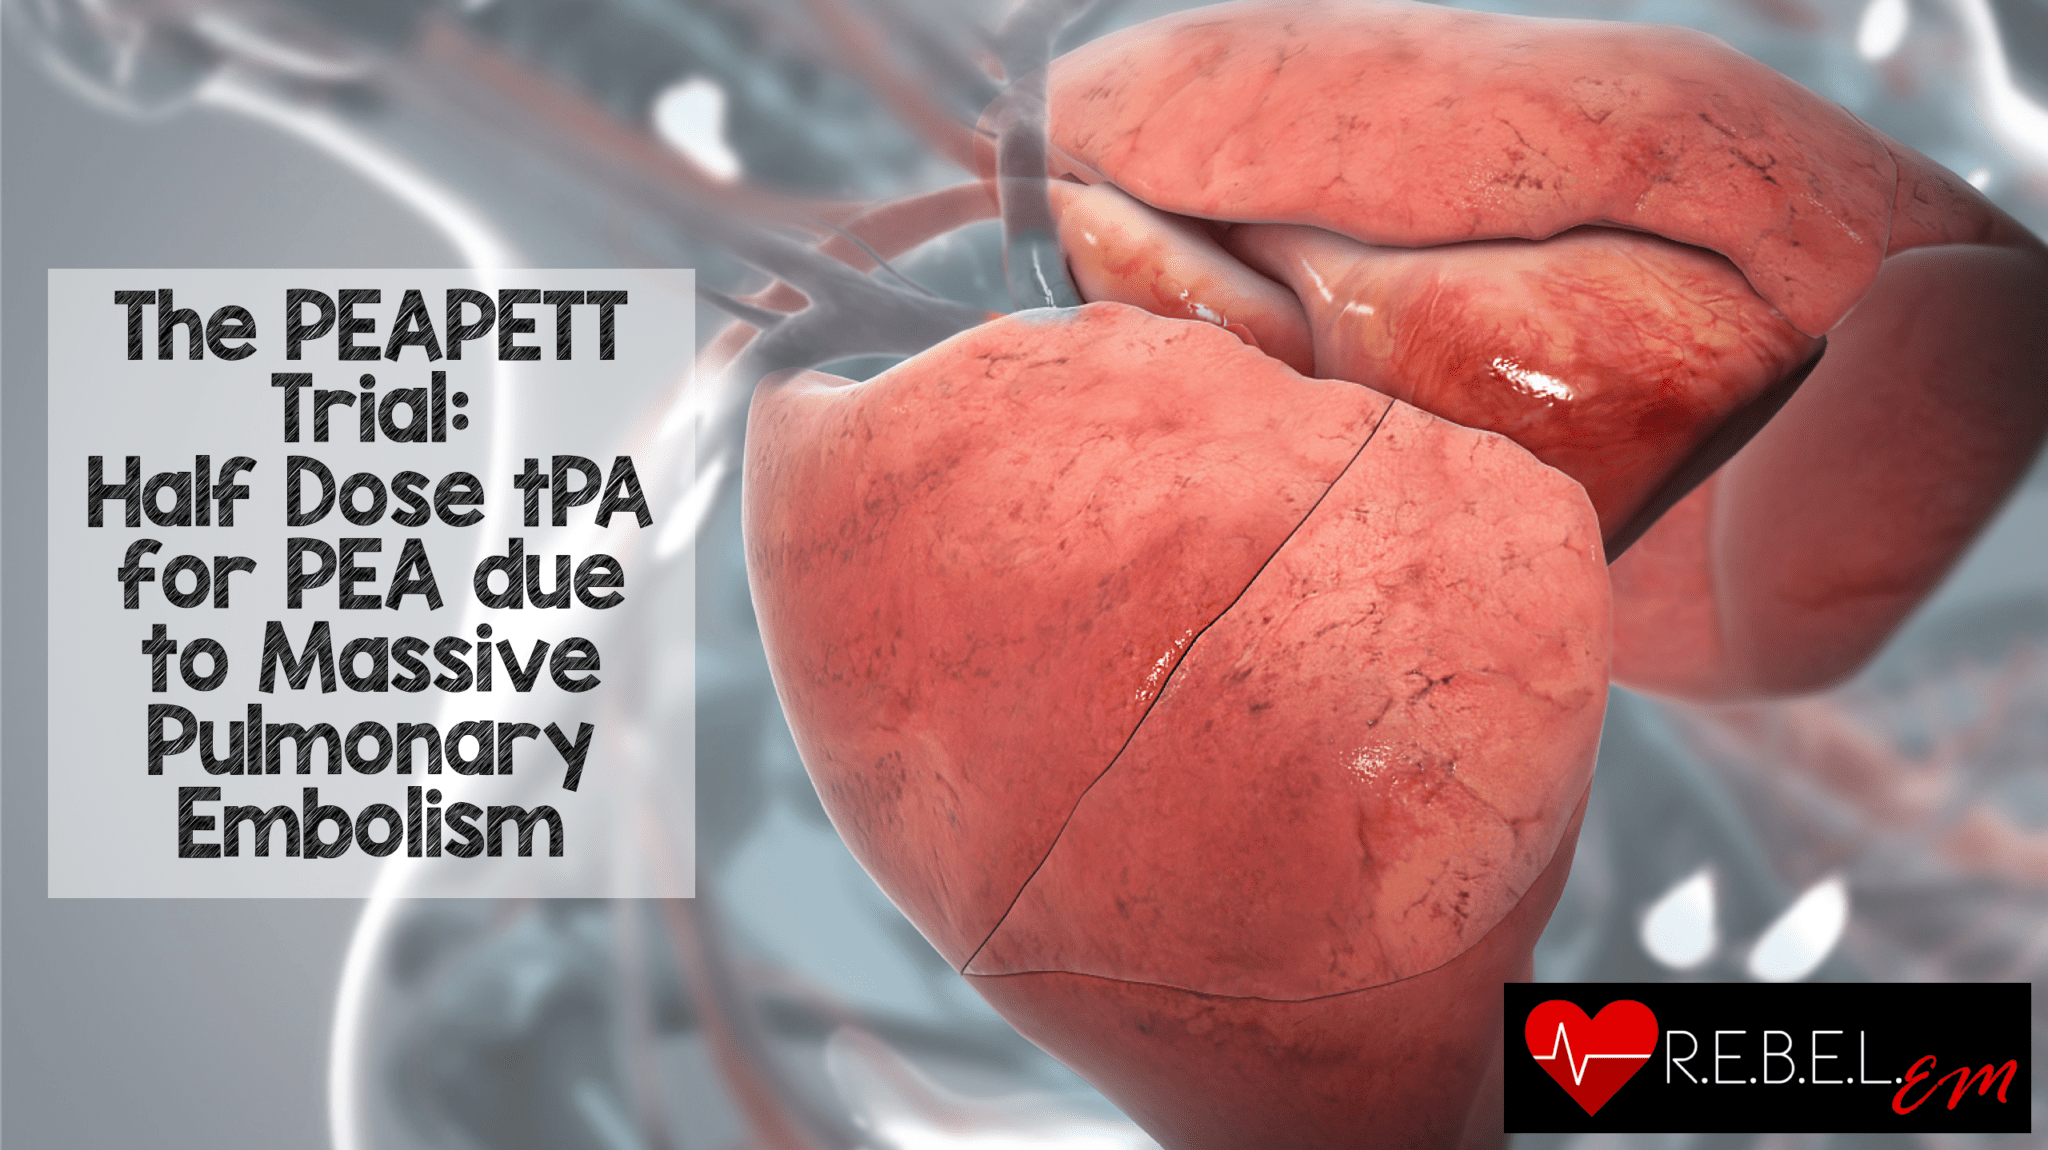 The PEAPETT Trial: Half Dose tPA for PEA due to Massive Pulmonary Embolism